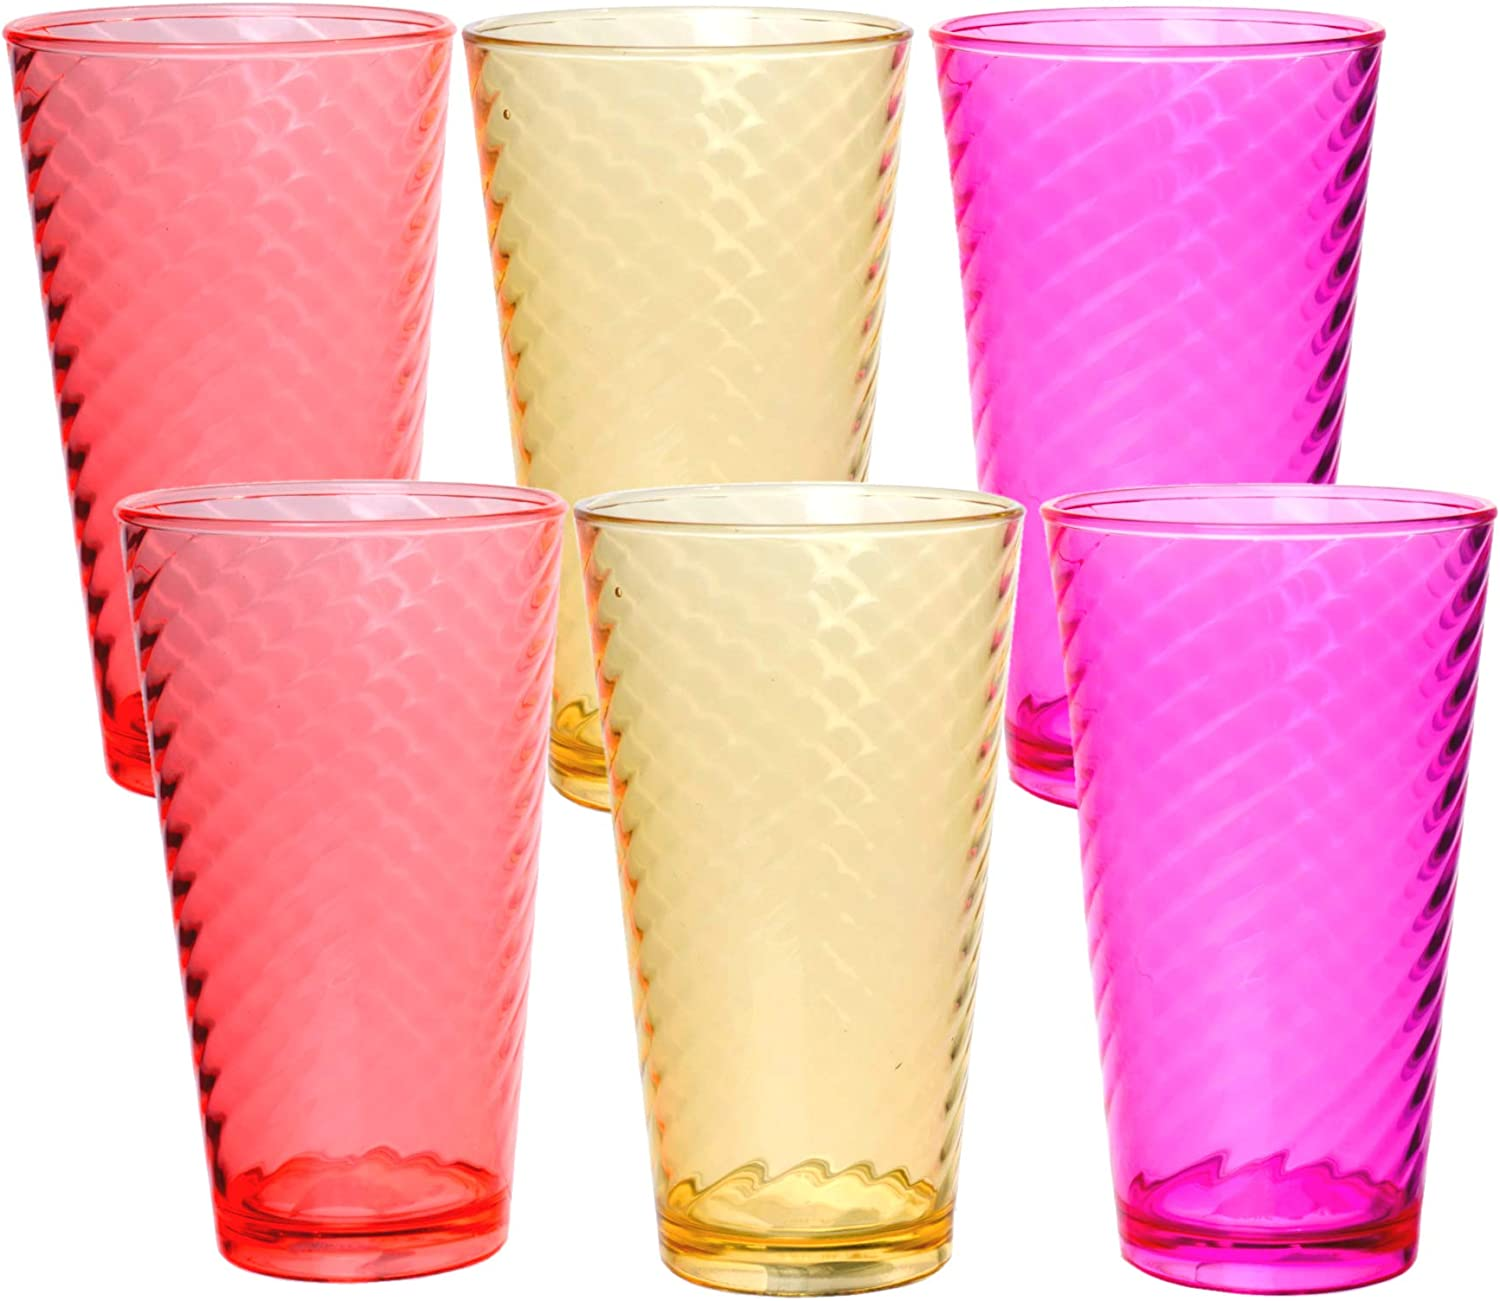 Swirl Break Resistant Plastic Beverage Tumbler - Colored Drinking Glasses for BBQ Outdoor Picnic Party, Assorted Colors, 17oz, Set of 6